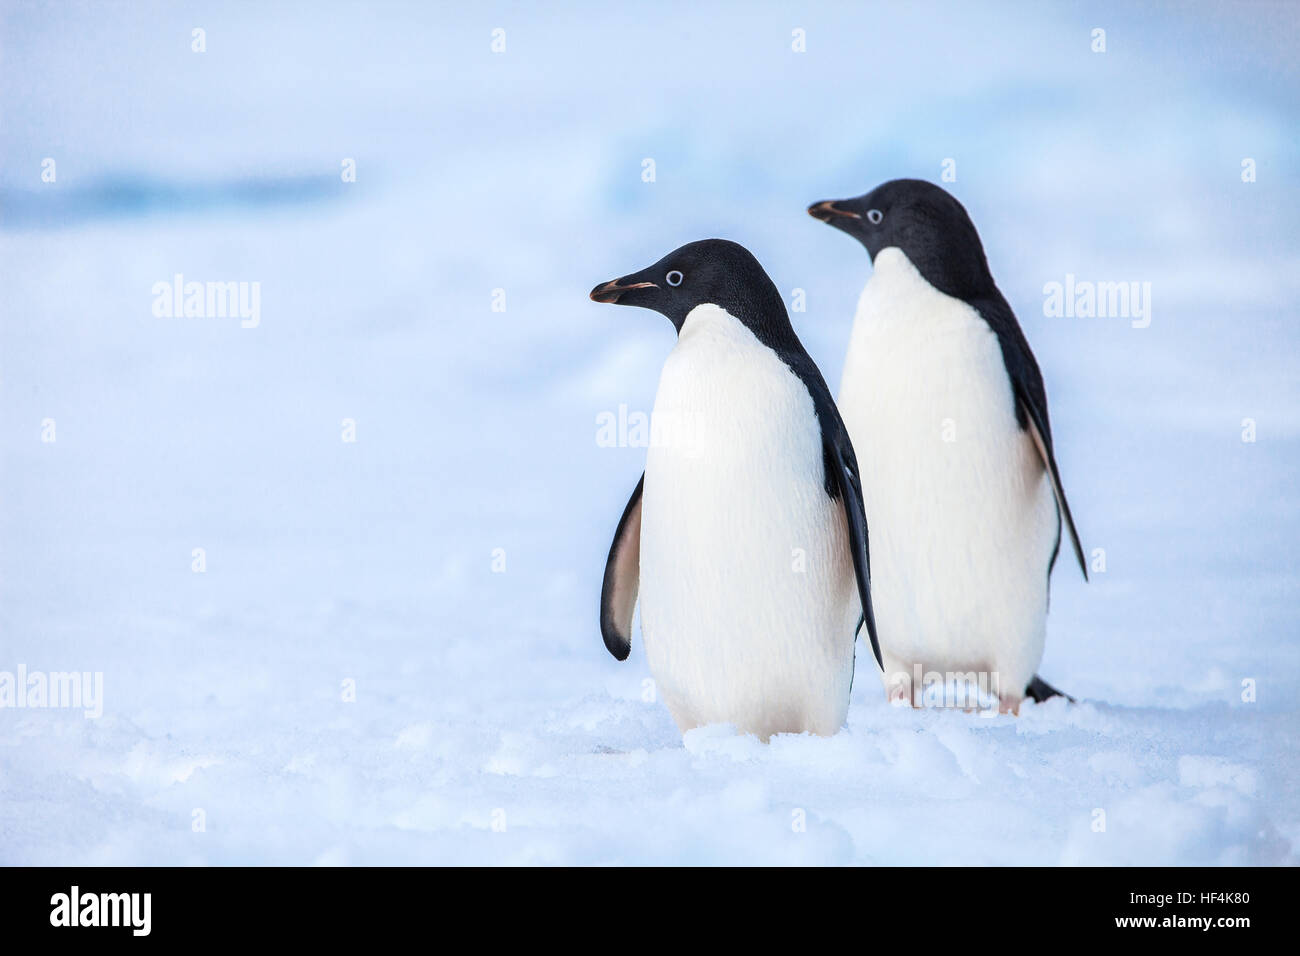 Two Adelie penguins keeping a careful watch out for predators - Stock Image